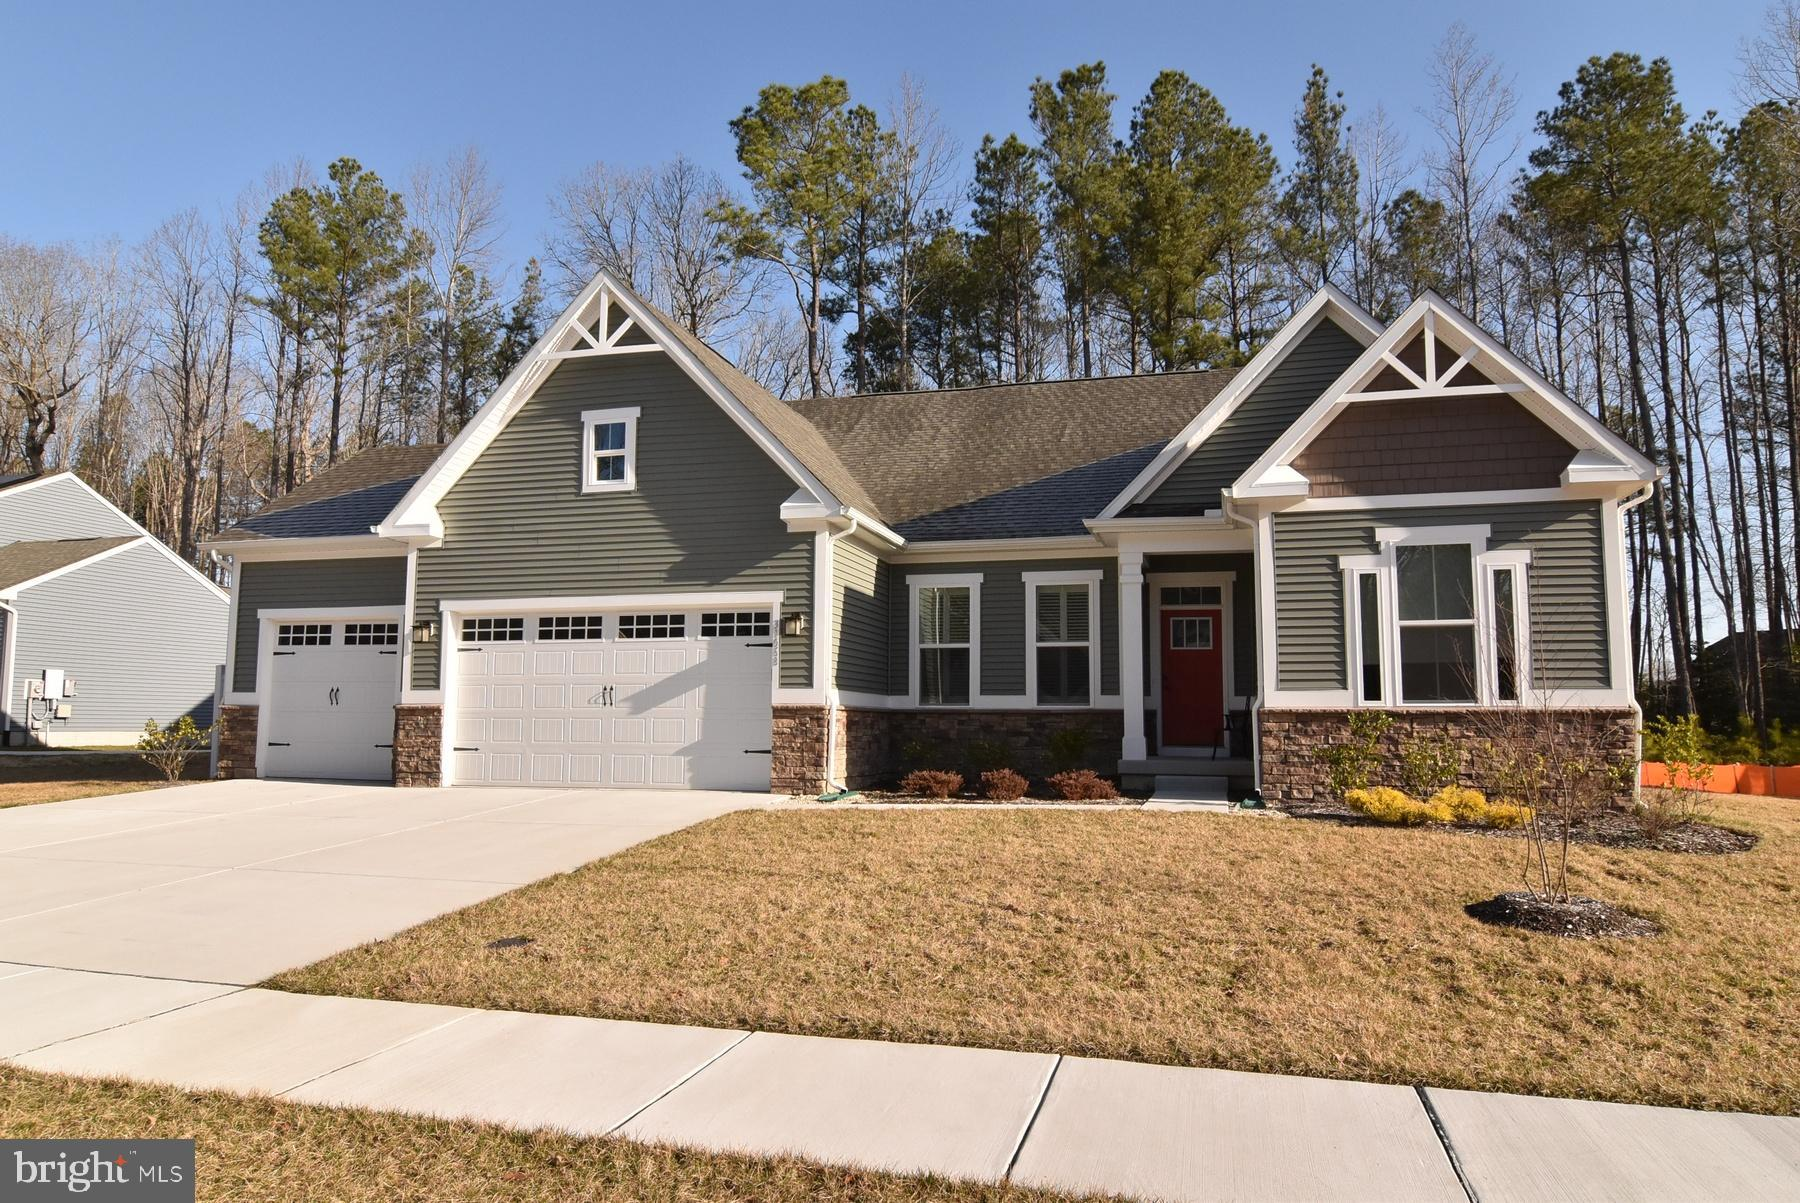 Spring is in the air! Beautiful Spring Haven model home with almost 4000 square feet of luxury! Located in the sought community of  Spring Breeze!  Better than new with all the upgrades. Top elevation w/ stone front, 3 car garage w/ insulation, finished basement with full bath, irrigation system with separate well, custom window treatments, just painted,  gutter guards, plus much more. Gorgeous gourmet kitchen w/ extended granite center island and extended granite counters, stainless steel appliances, pantry.  LVP in the living areas. The Spring Breeze community is a secluded wooded community minutes from Lewes and Rehoboth Beach featuring an outdoor pool and low HOA fees. Minutes to 5 shopping centers! Don't let this one get away!